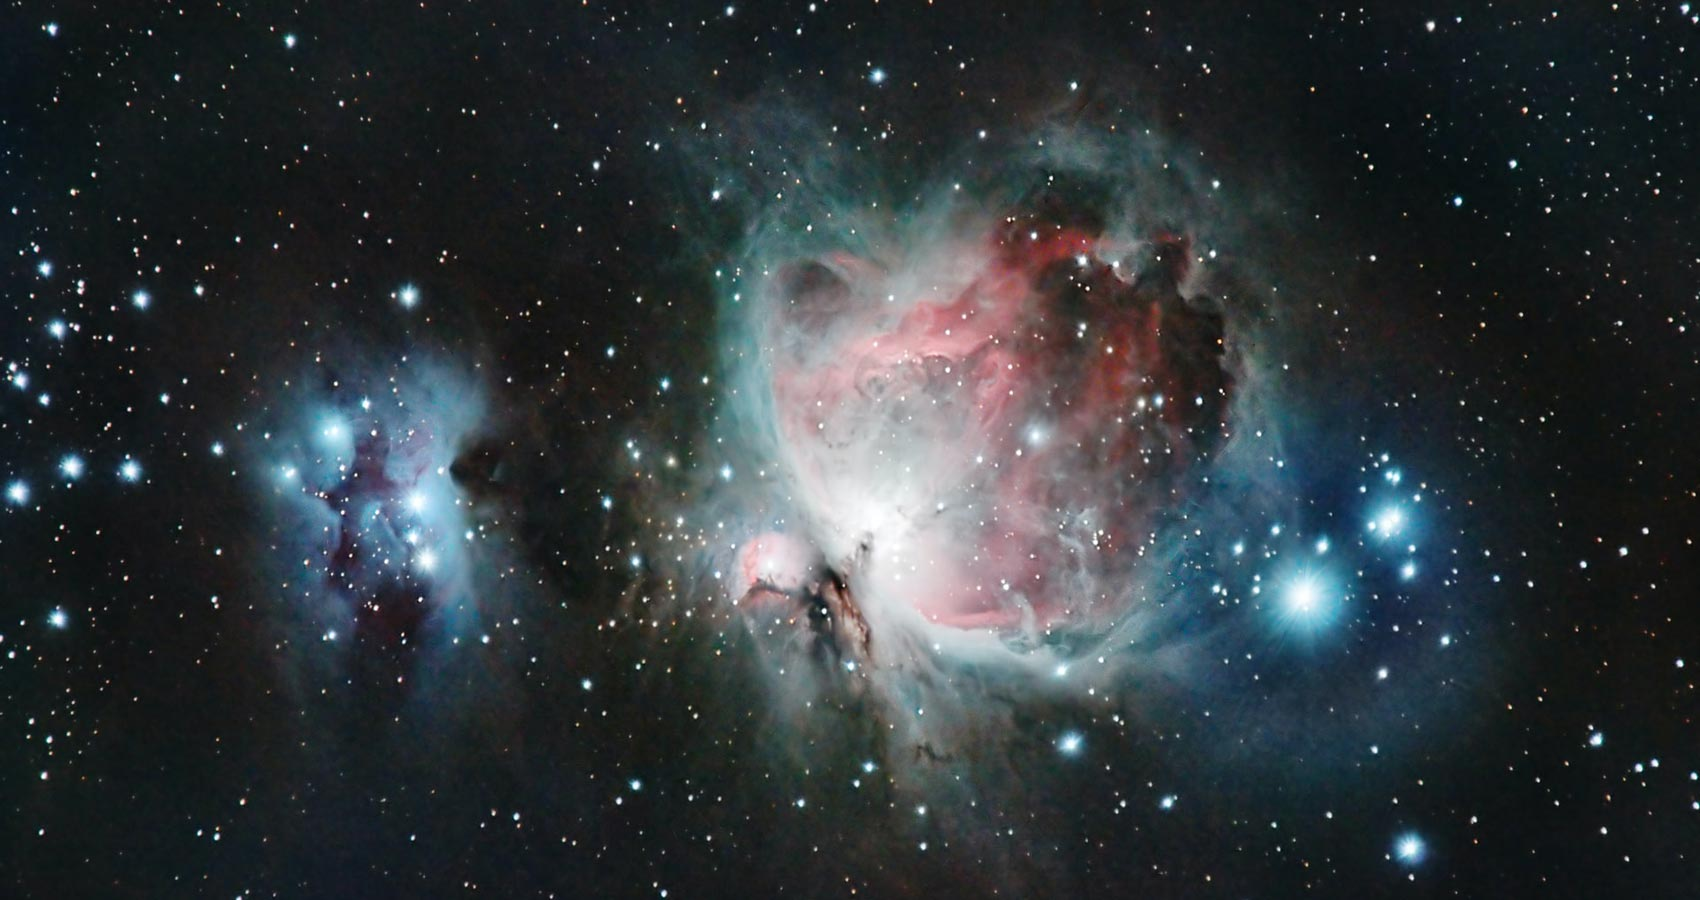 Star-Gaze, poetry by Himel Ghosh at Spillwords.com